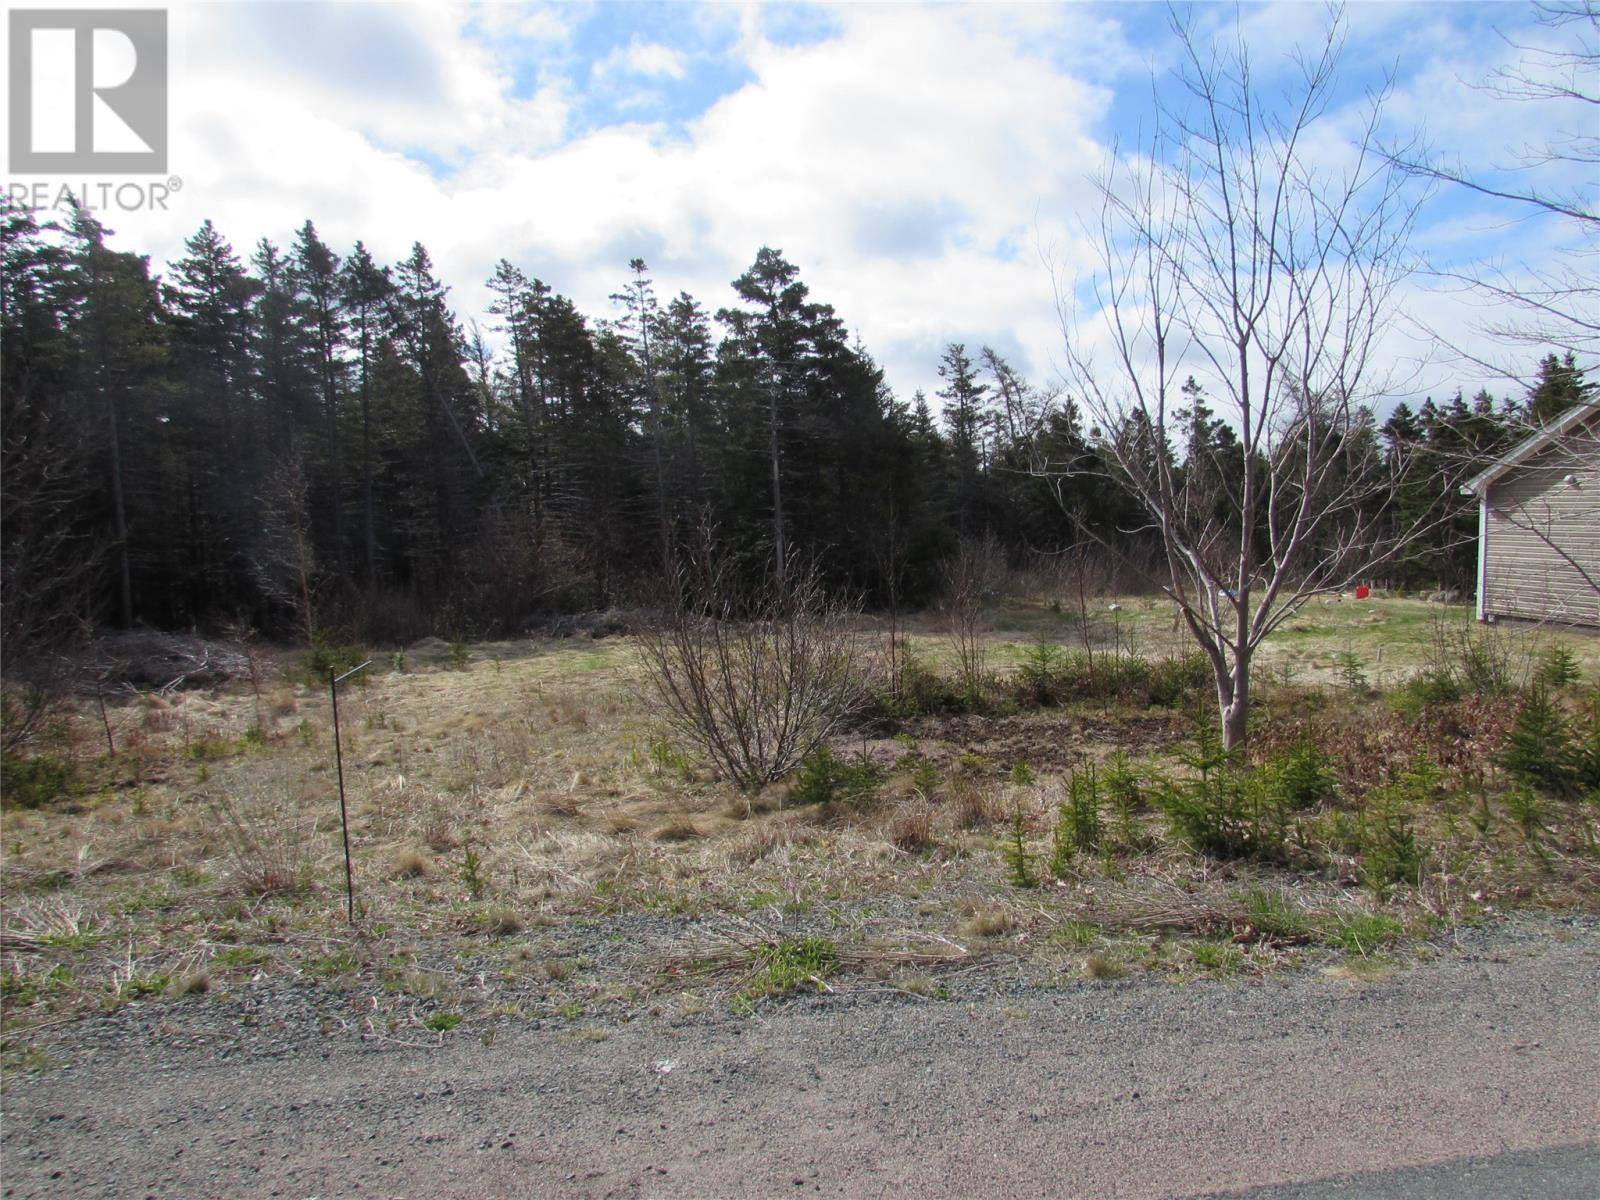 Residential property for sale at 30 Ridge Rd Holyrood Newfoundland - MLS: 1196155